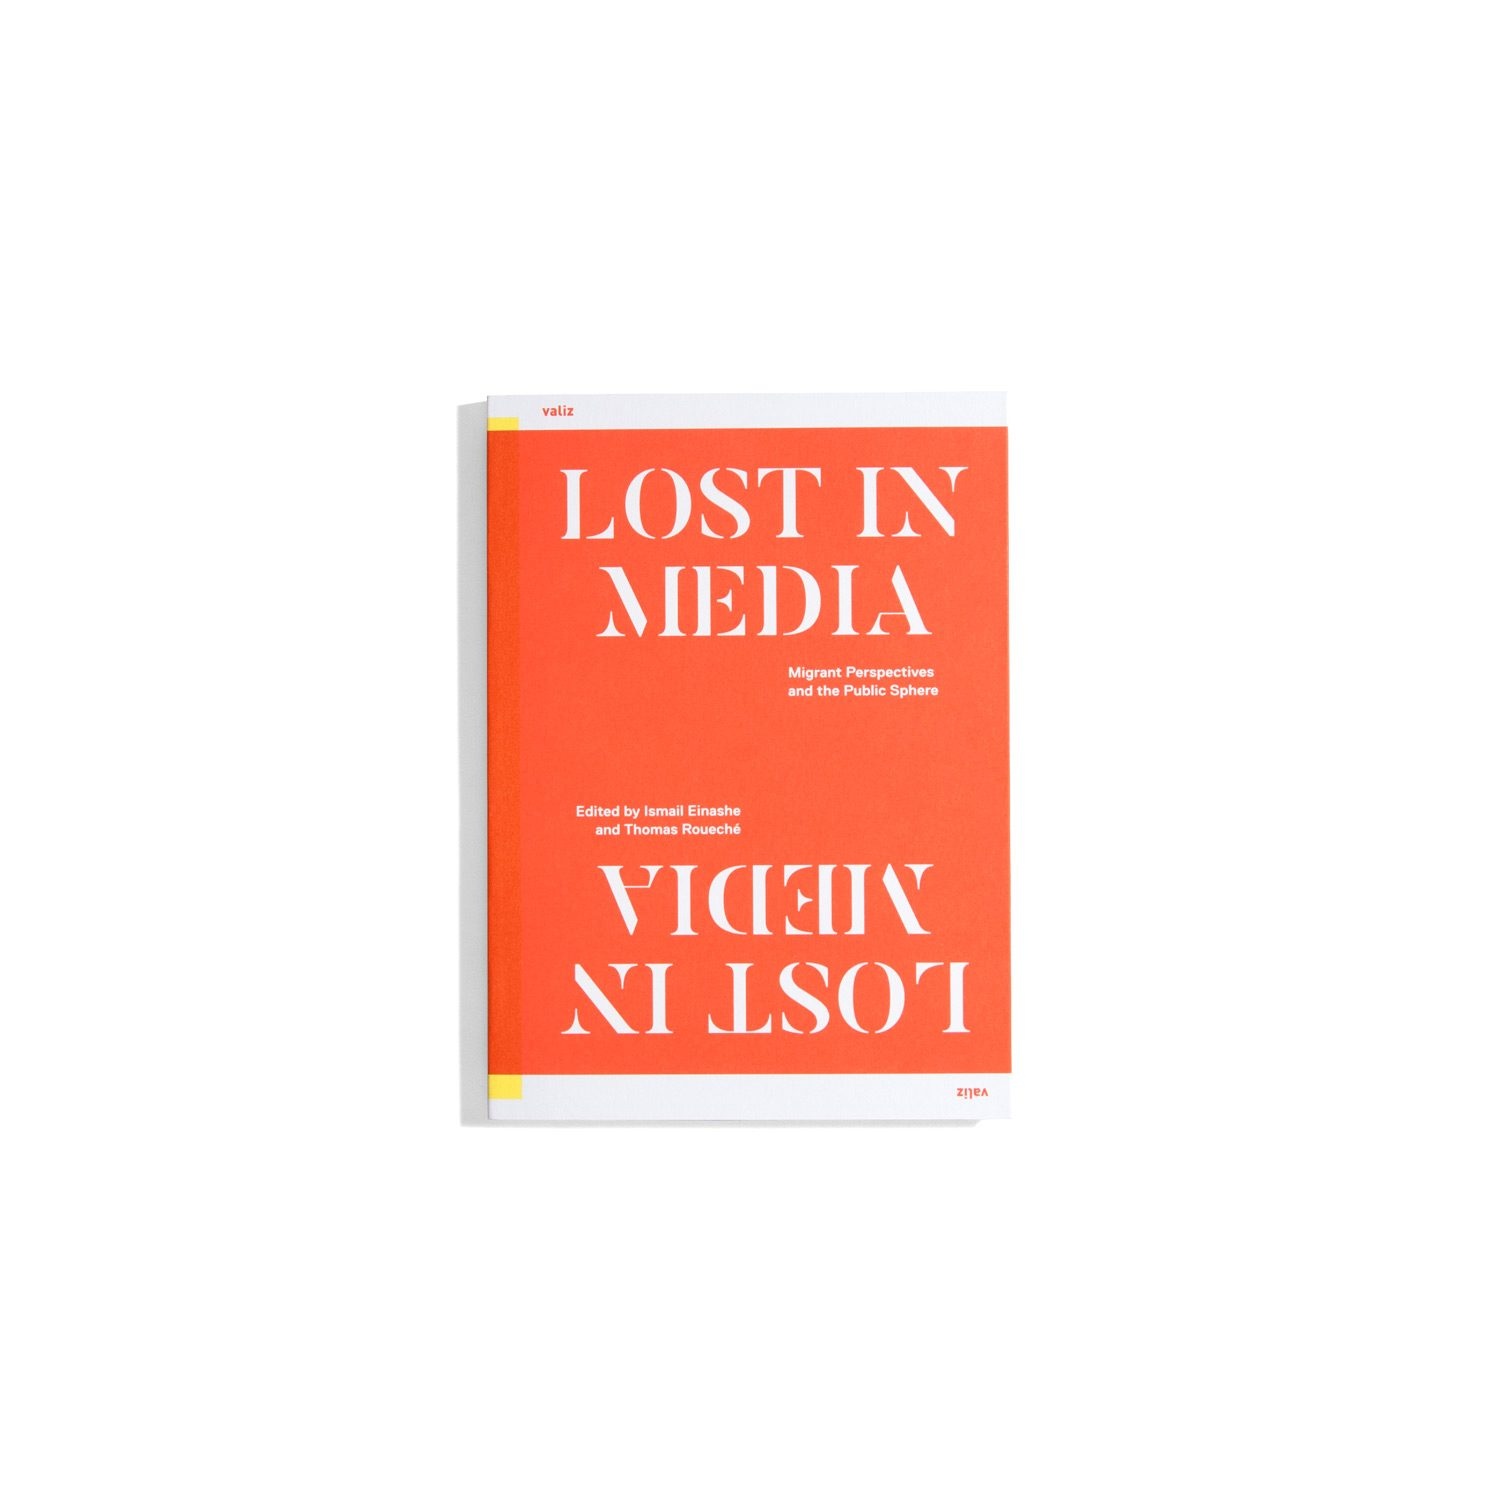 Lost in Media - Migrant Perspectives and the Public Sphere